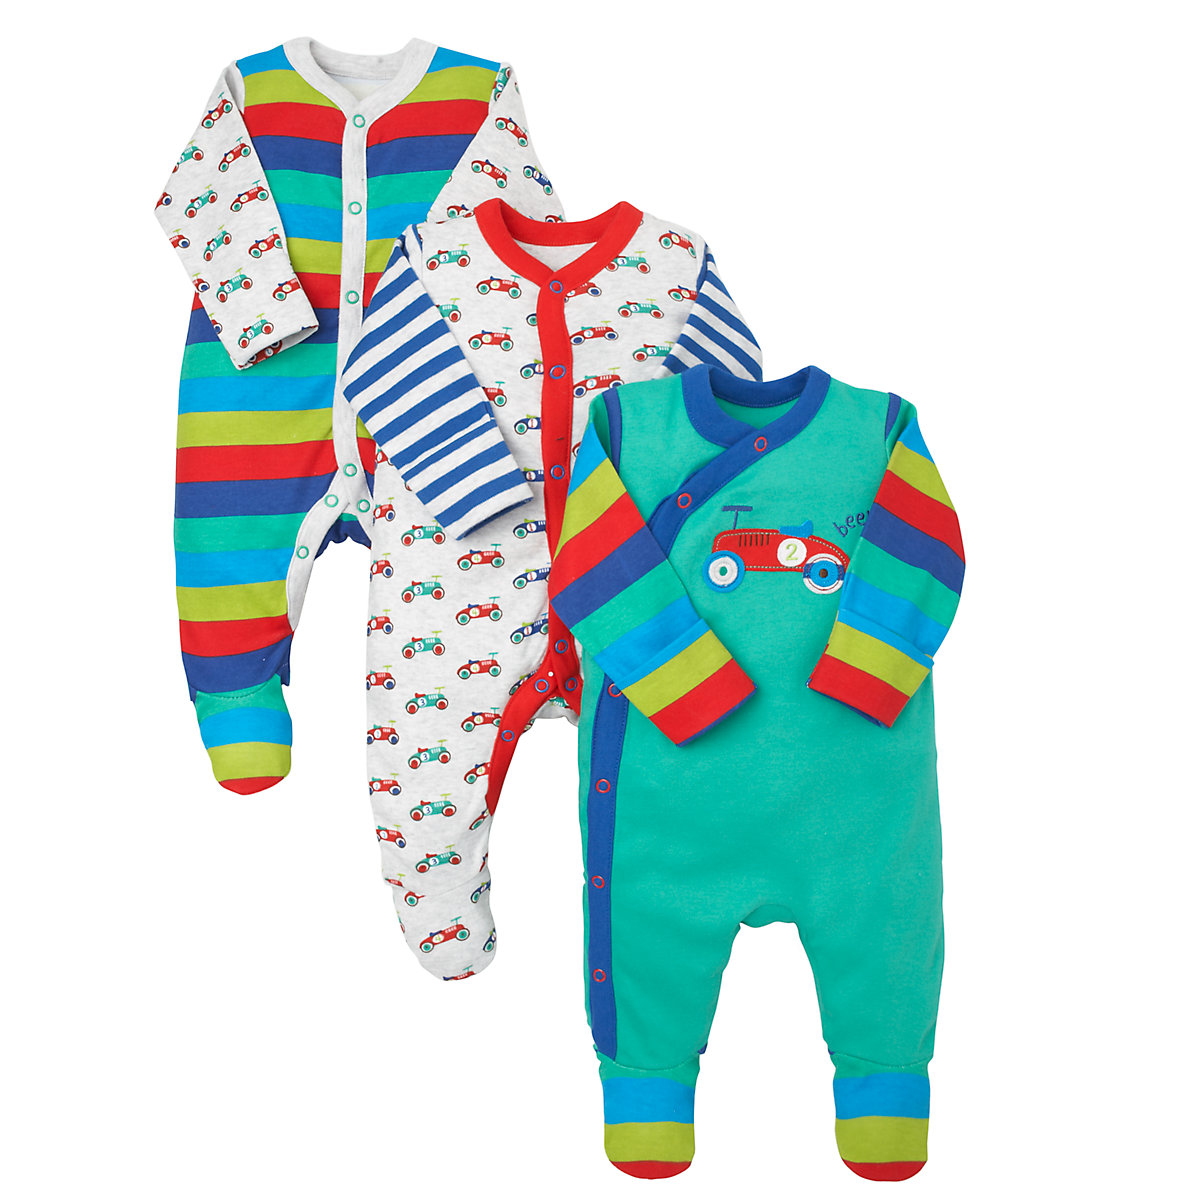 Mothercare Newborns Vintage Car Sleepsuits- 3 Pack Size 3-6